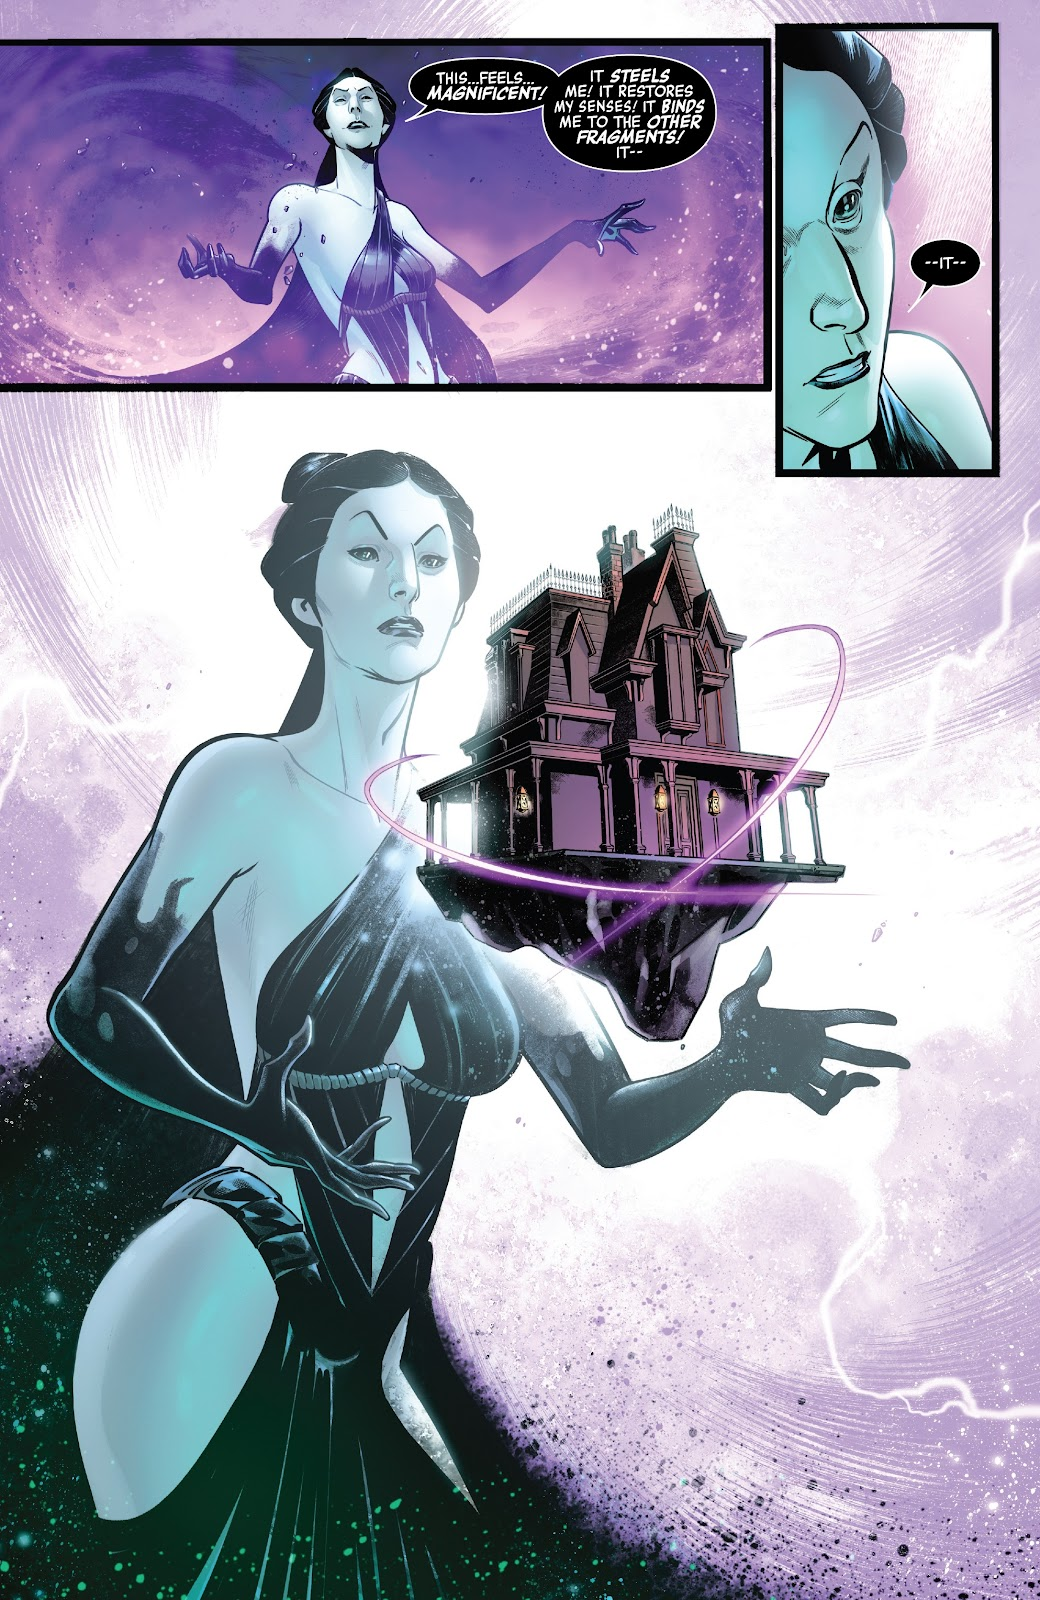 Read online Avengers No Road Home comic -  Issue #7 - 17